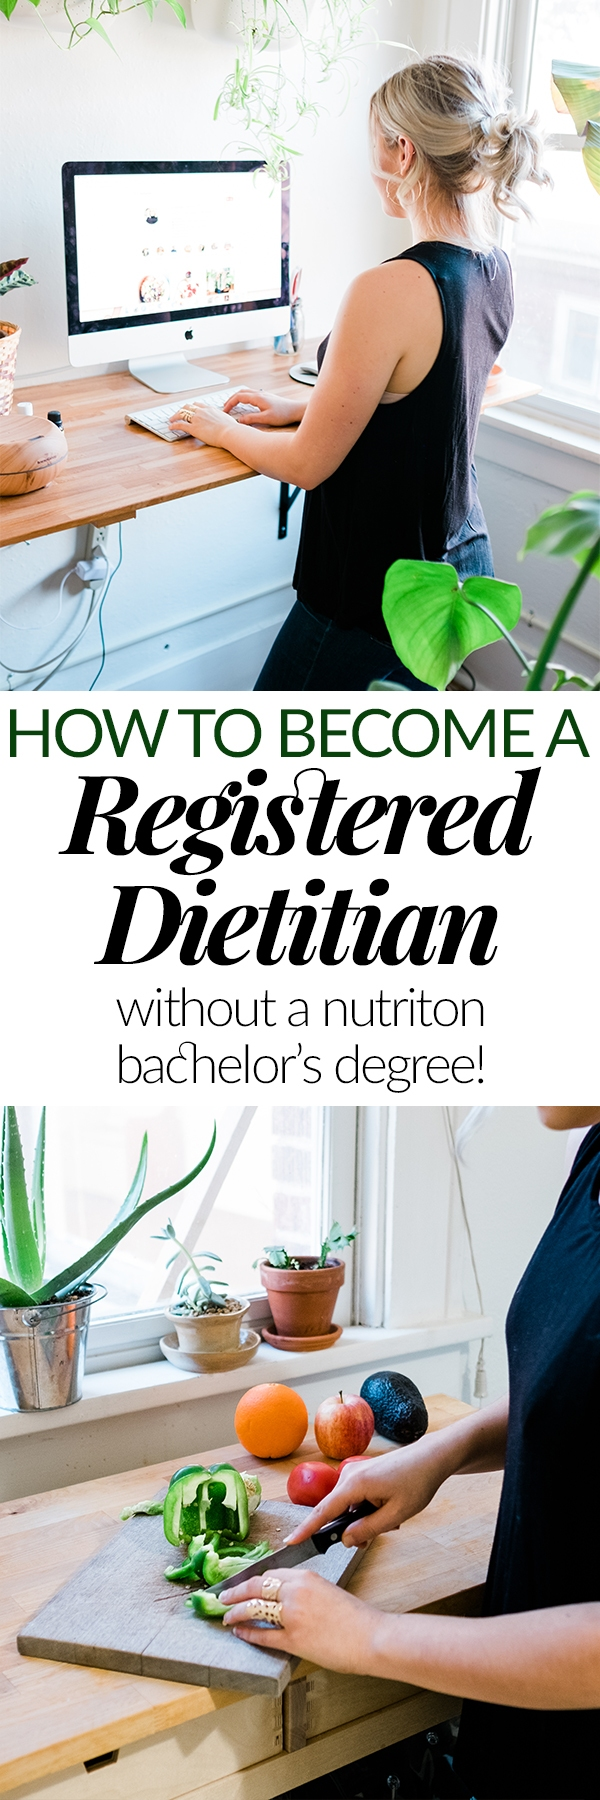 "One of the most common questions I get is ""how did you switch career paths to become a registered dietitian (RD)?"" I'm detailing every step you'll need to take if you want to become a dietitian and have a non-nutrition bachelor's degree."